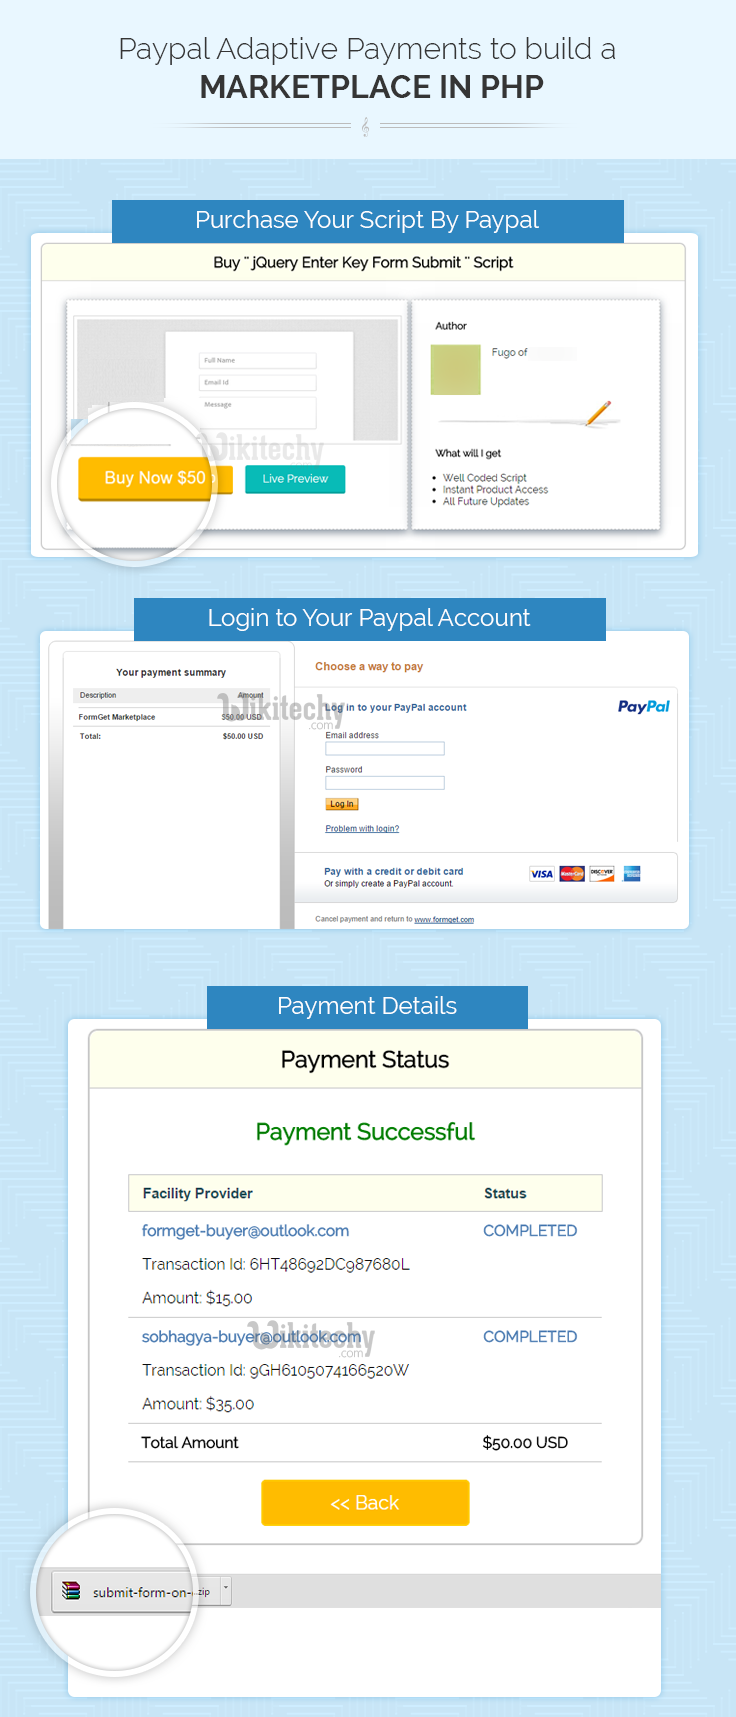 php tutorial - PayPal Adaptive Payments for Marketplace in